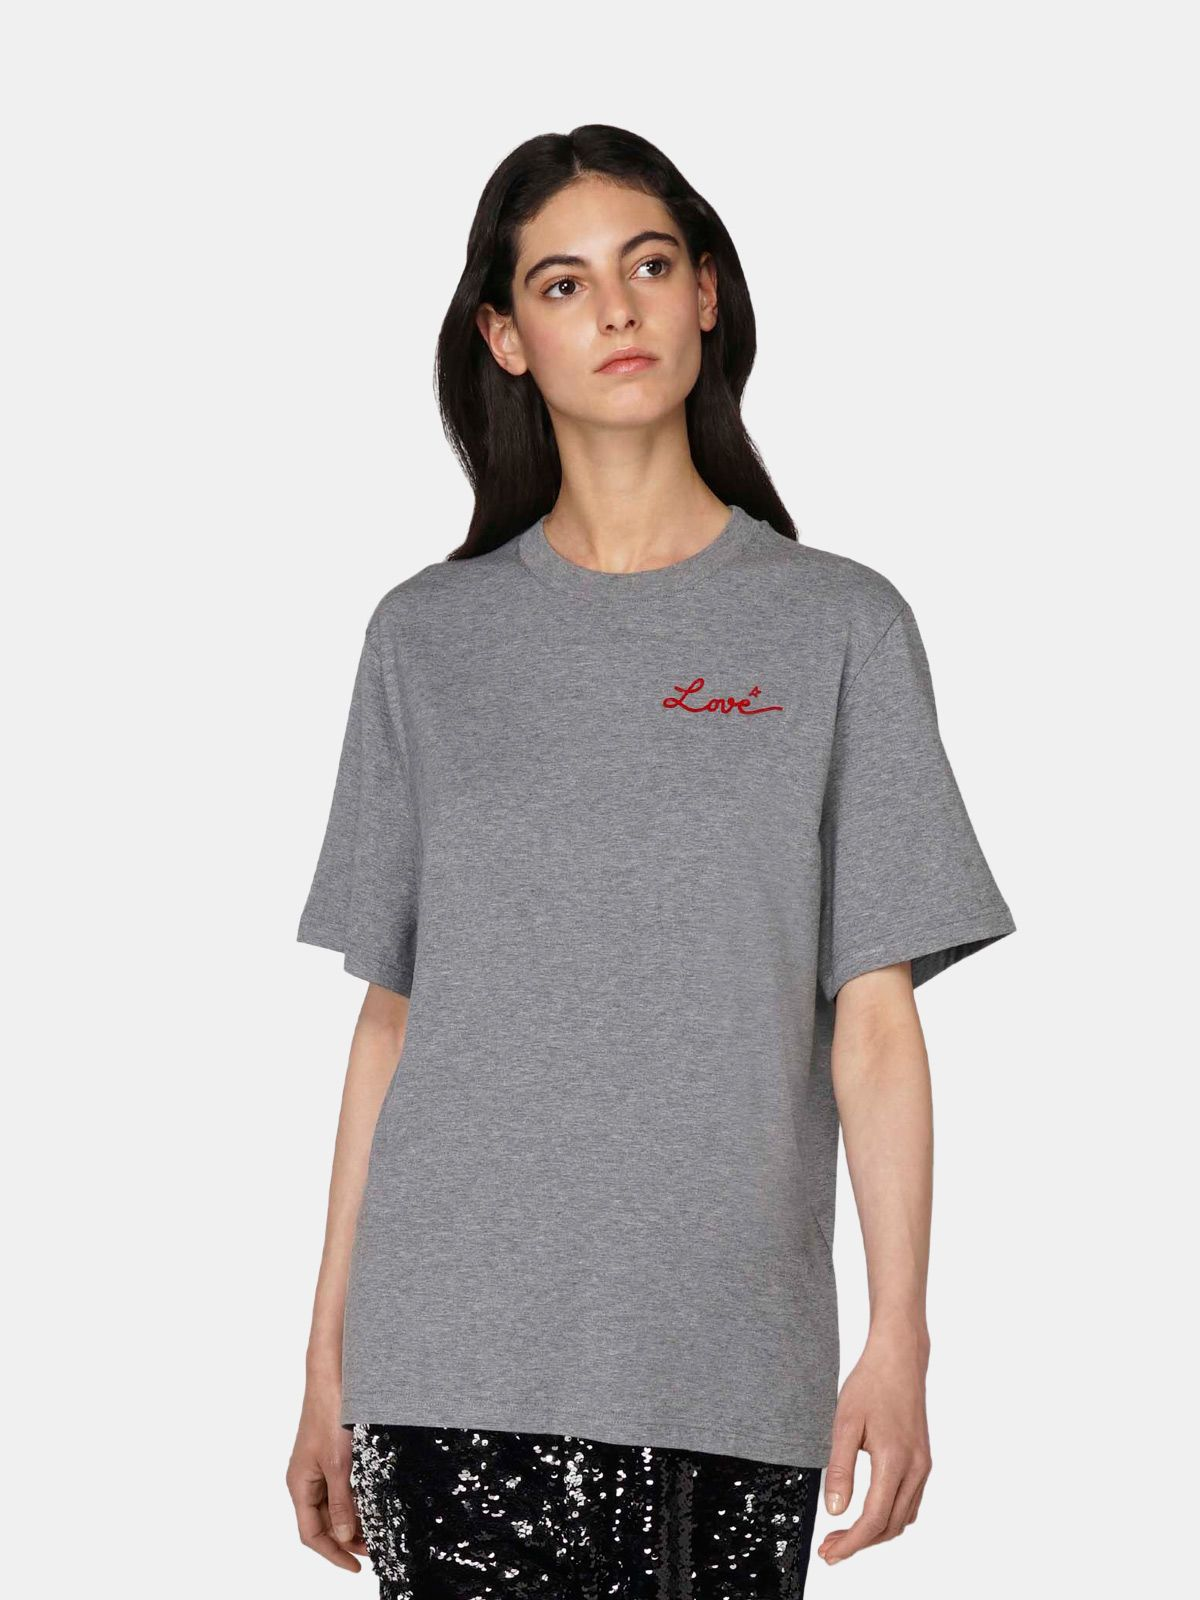 Golden Goose - Grey Golden T-shirt with Love embroidery in